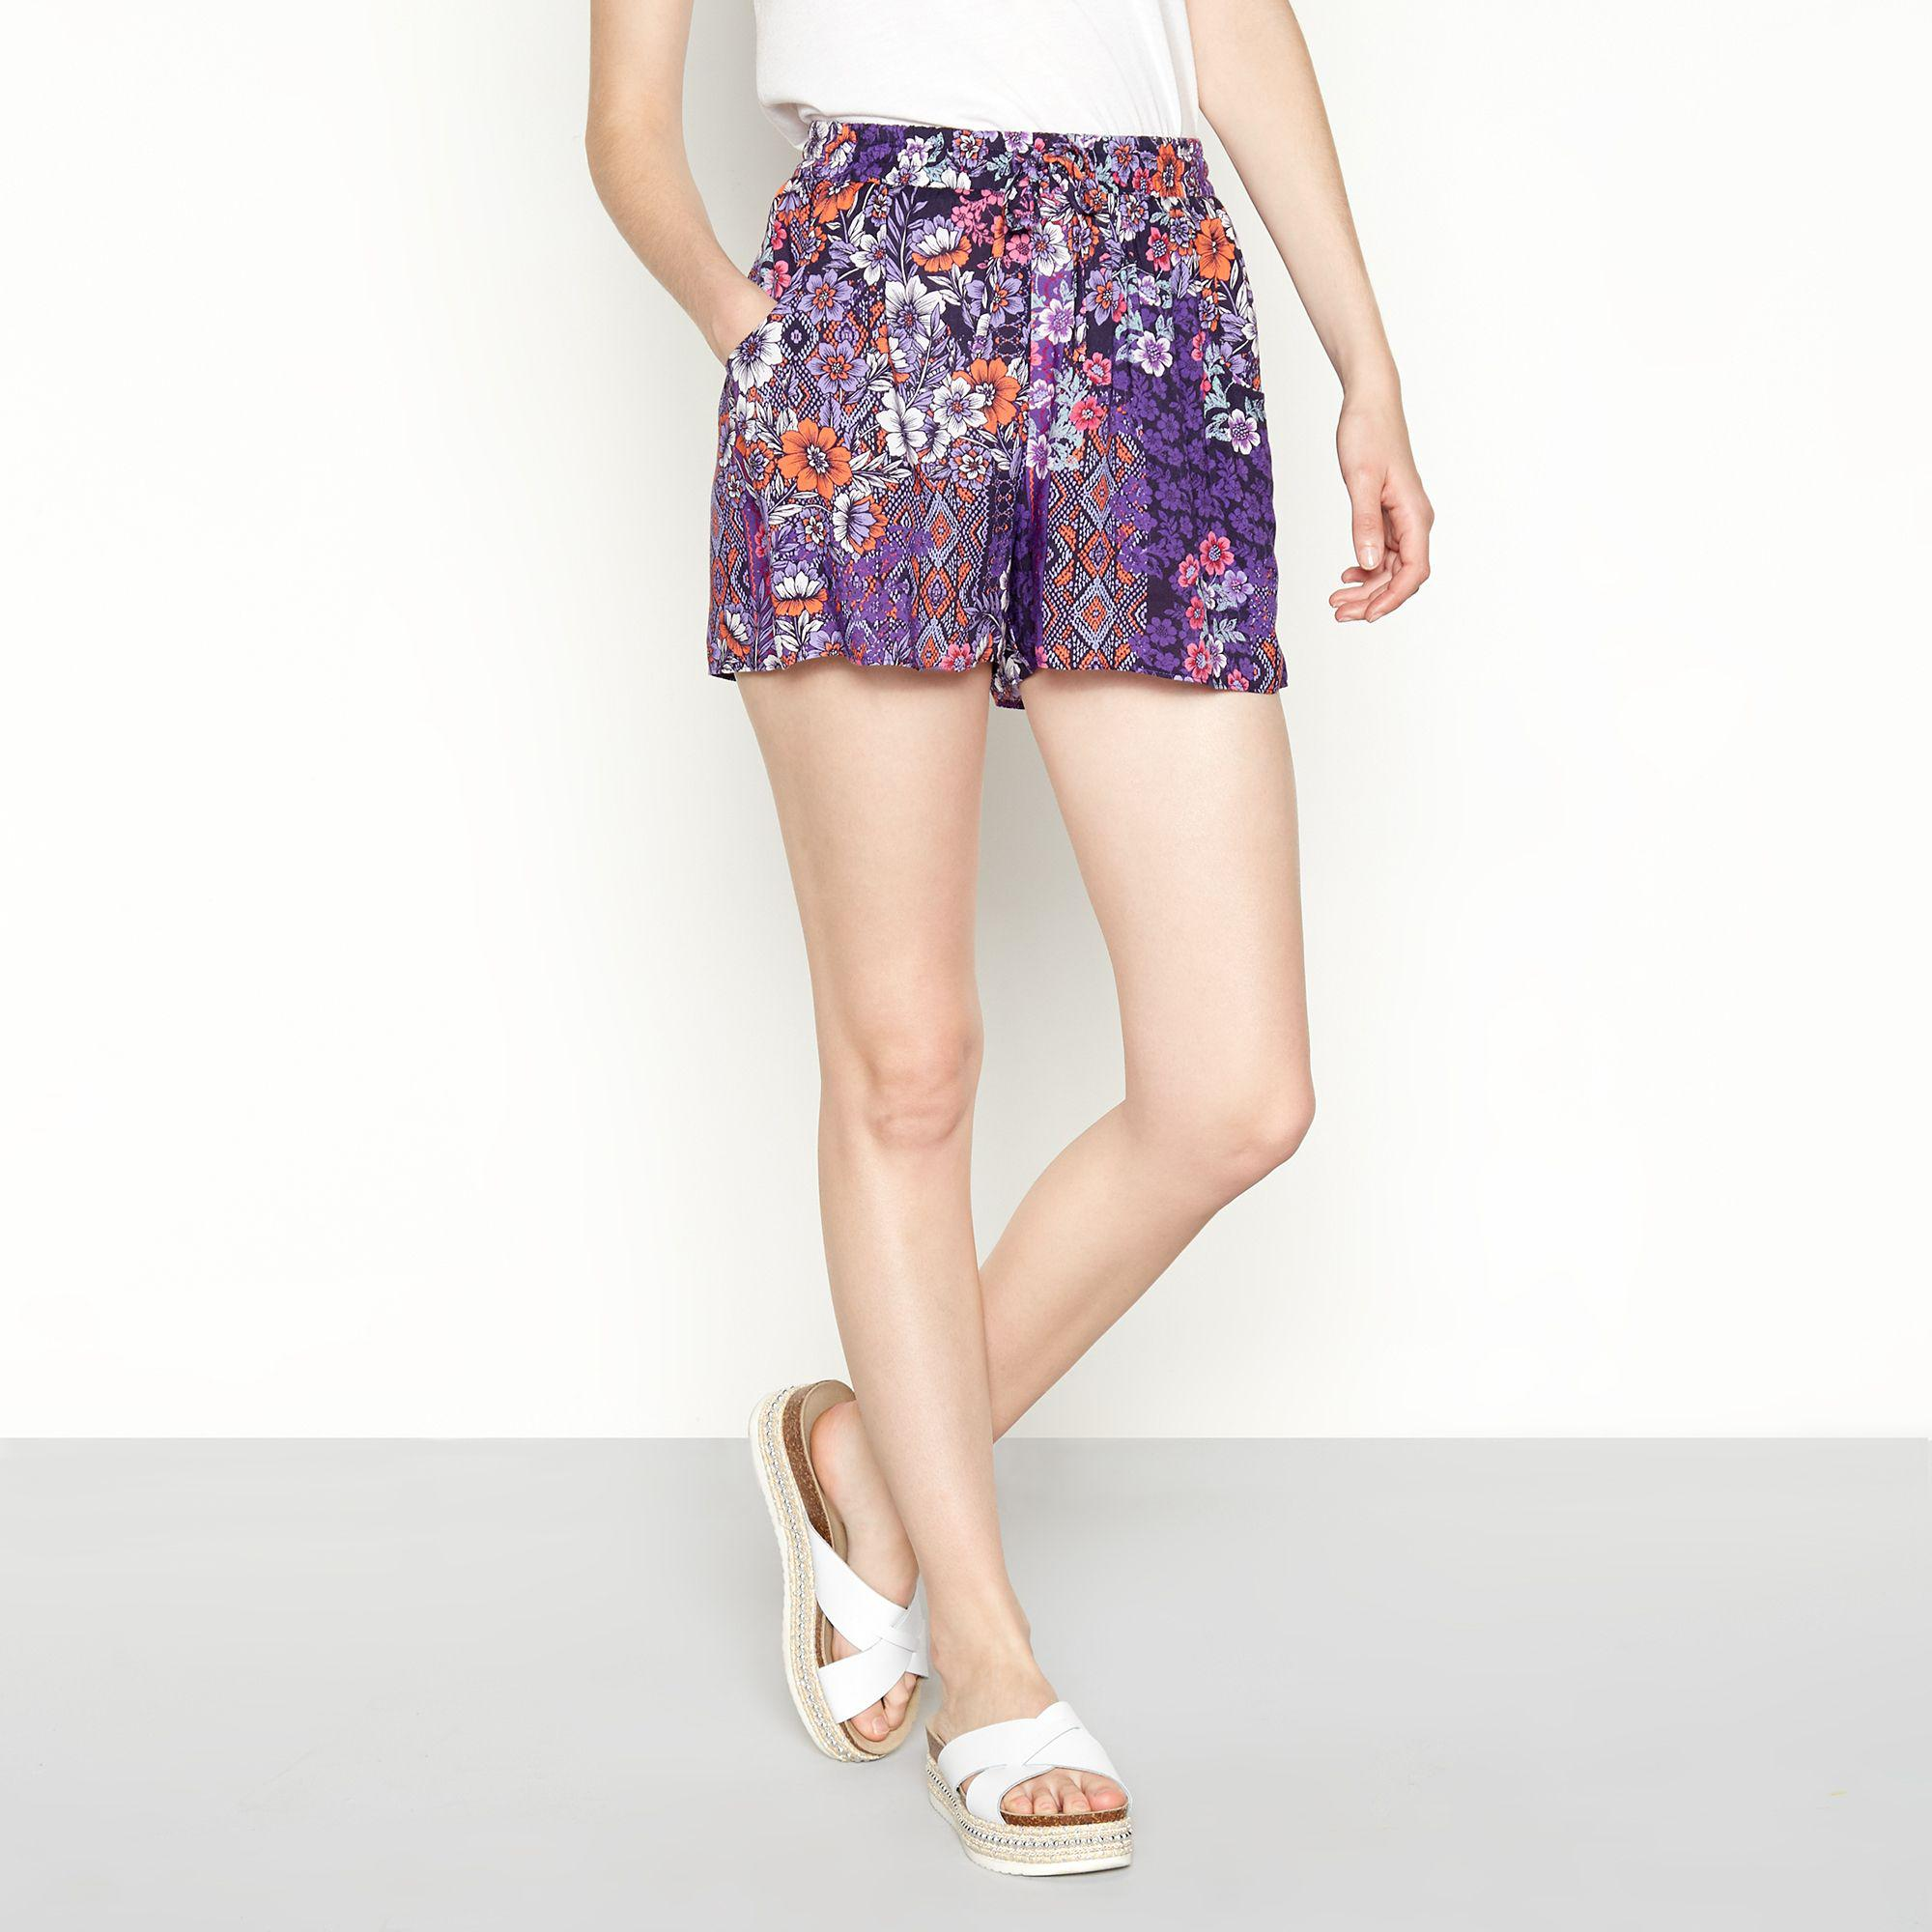 0717af11e7 Red Herring. Women's Purple Multi-coloured Floral Print Loose Fit Shorts